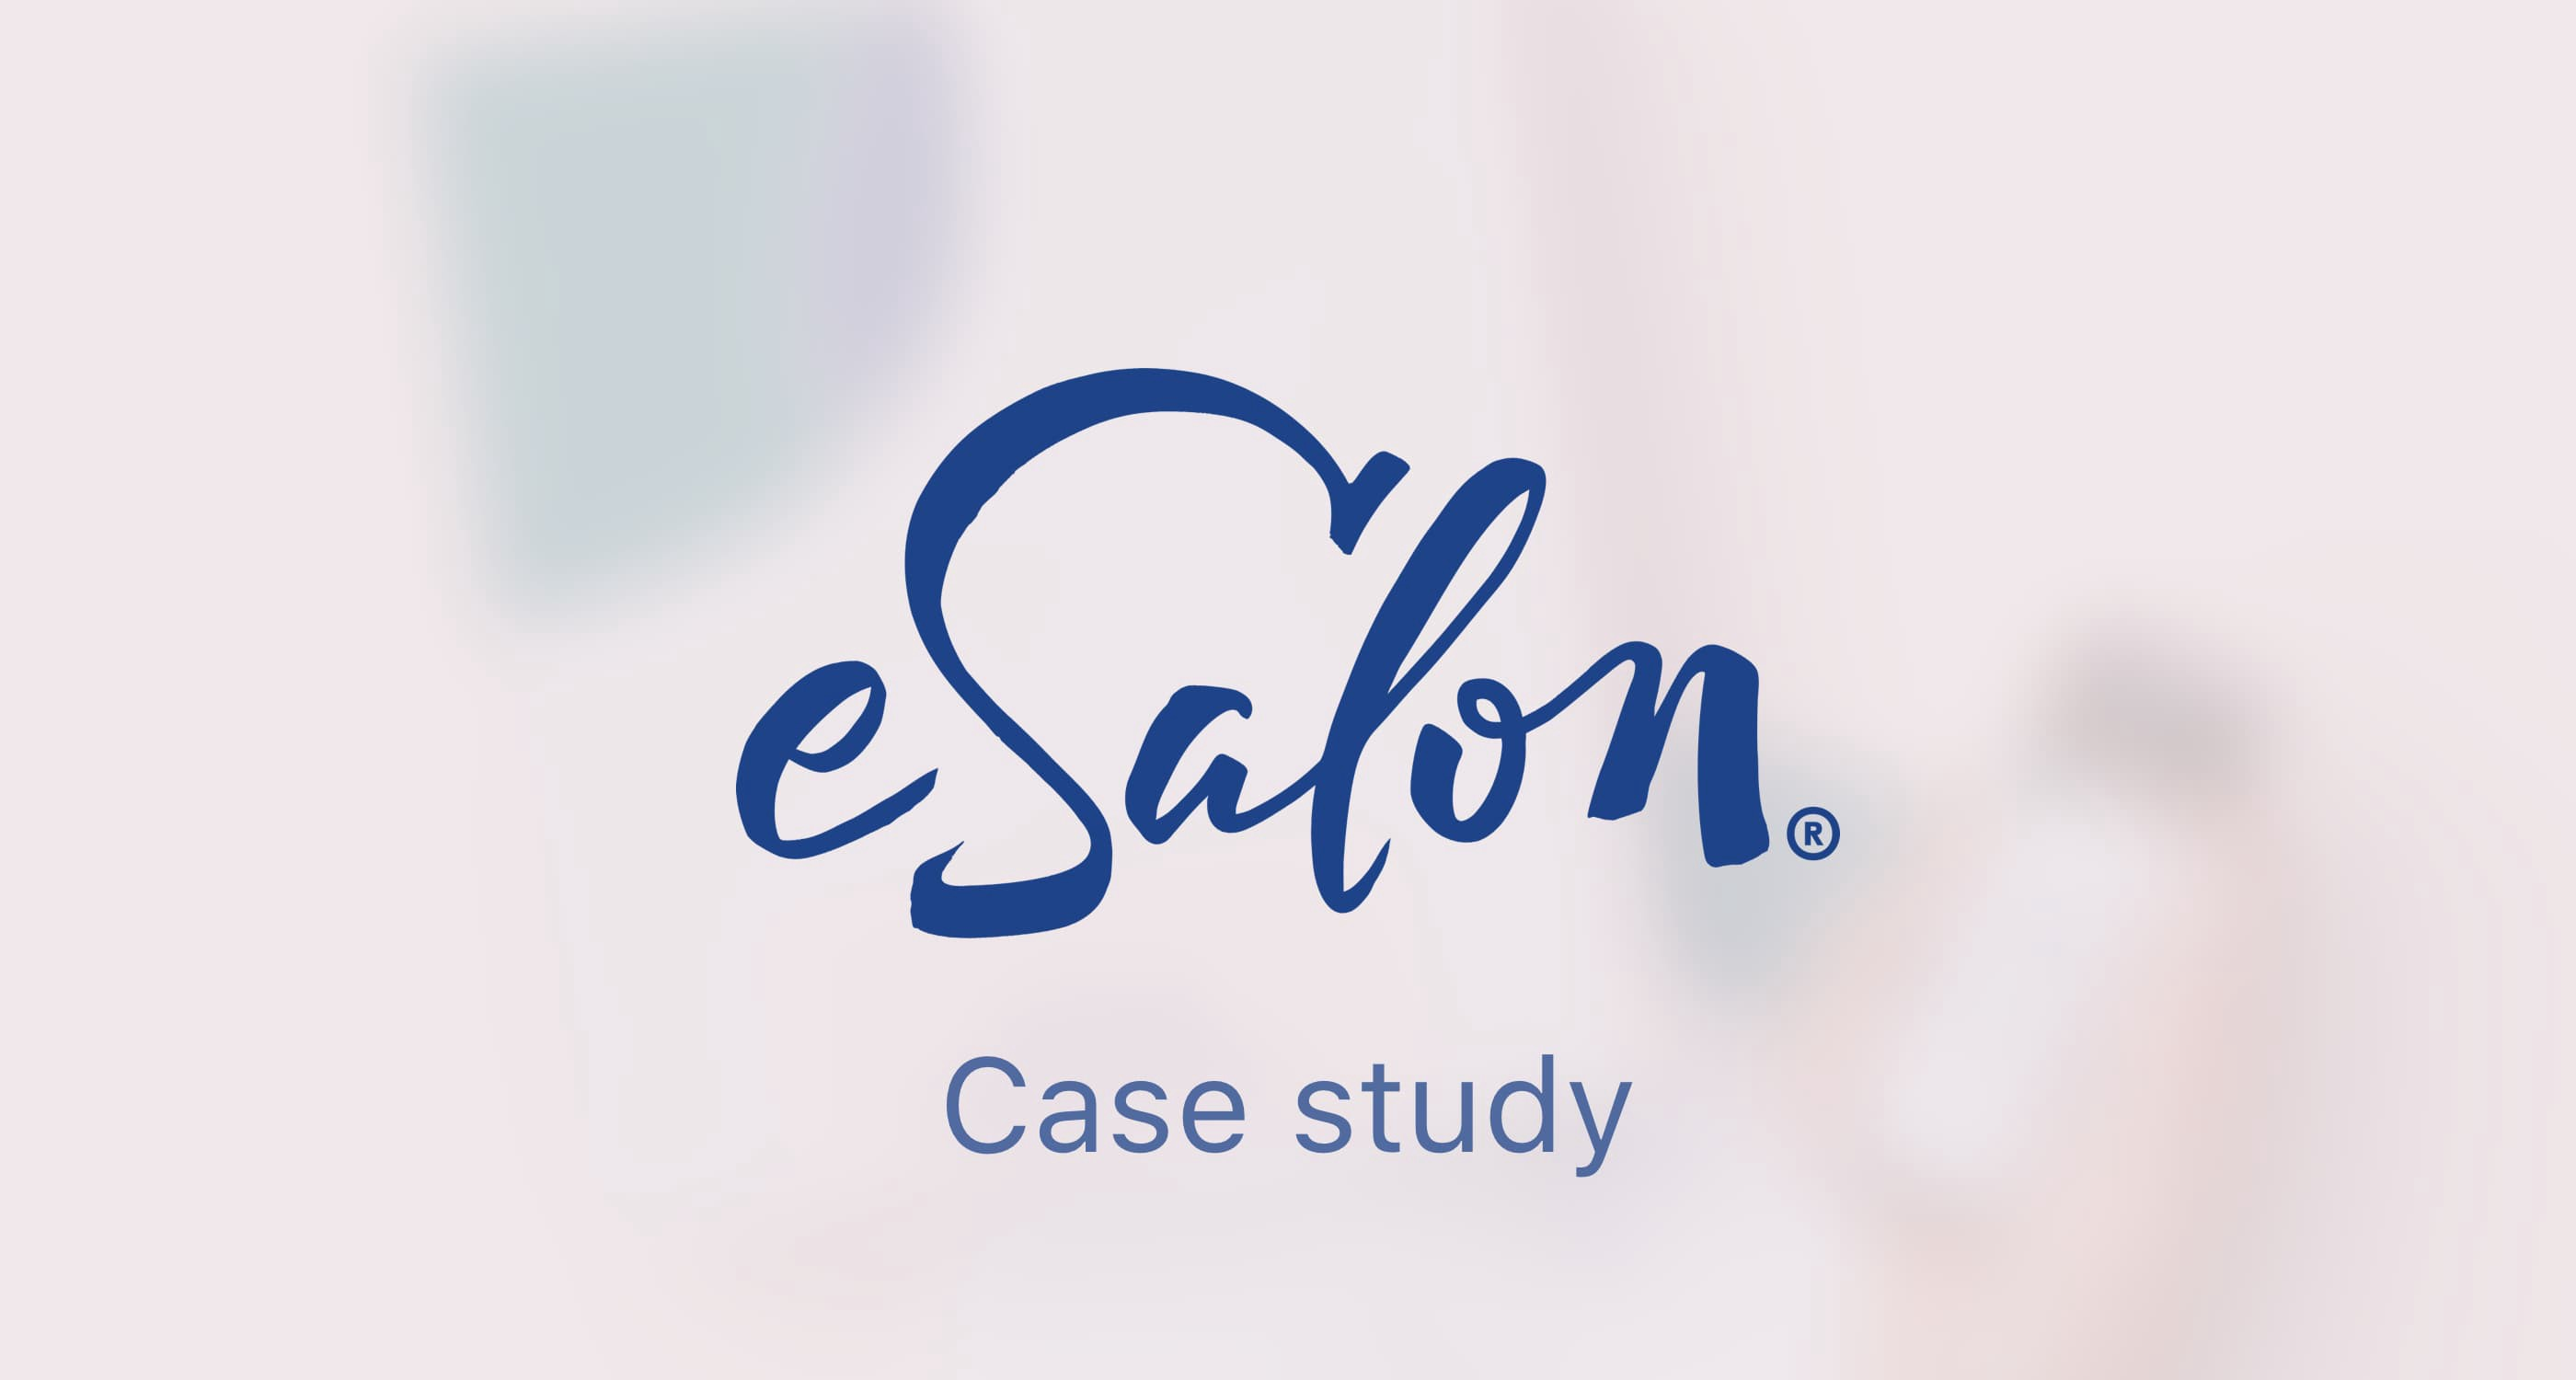 ESALON: eSalon creates at-home hair color made especially for you and delivered to your door. Our salon-grade hair dye has been awarded Best Home Hair Color by …